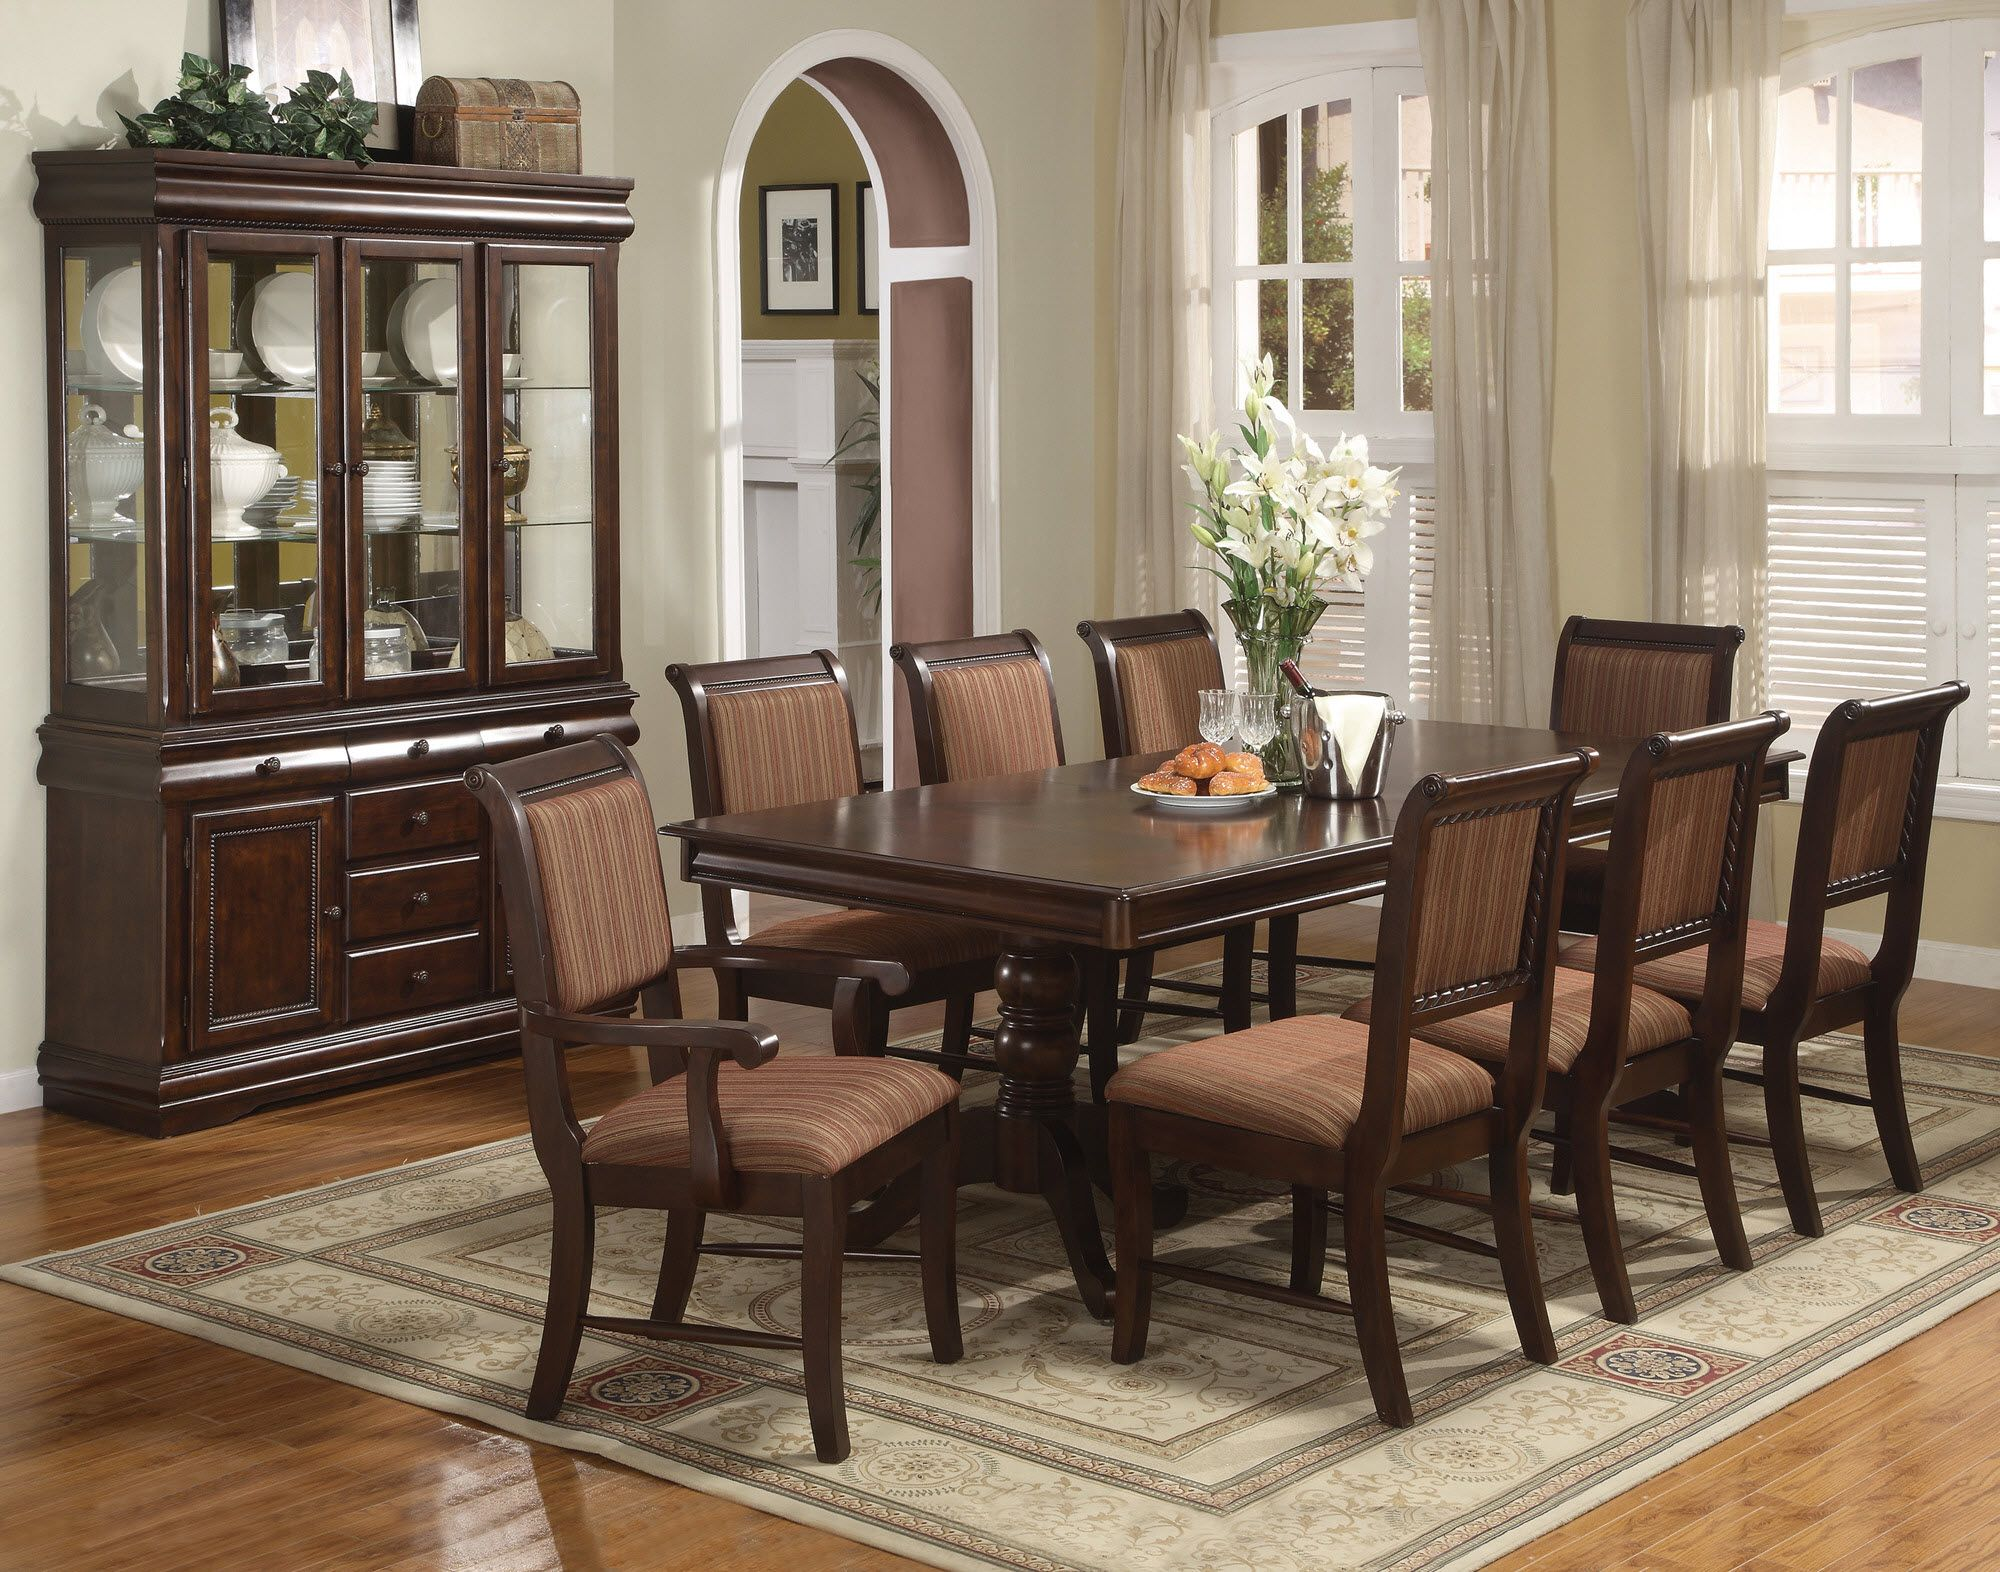 17 Best Images About Dining Room Furniture On Pinterest Mirror